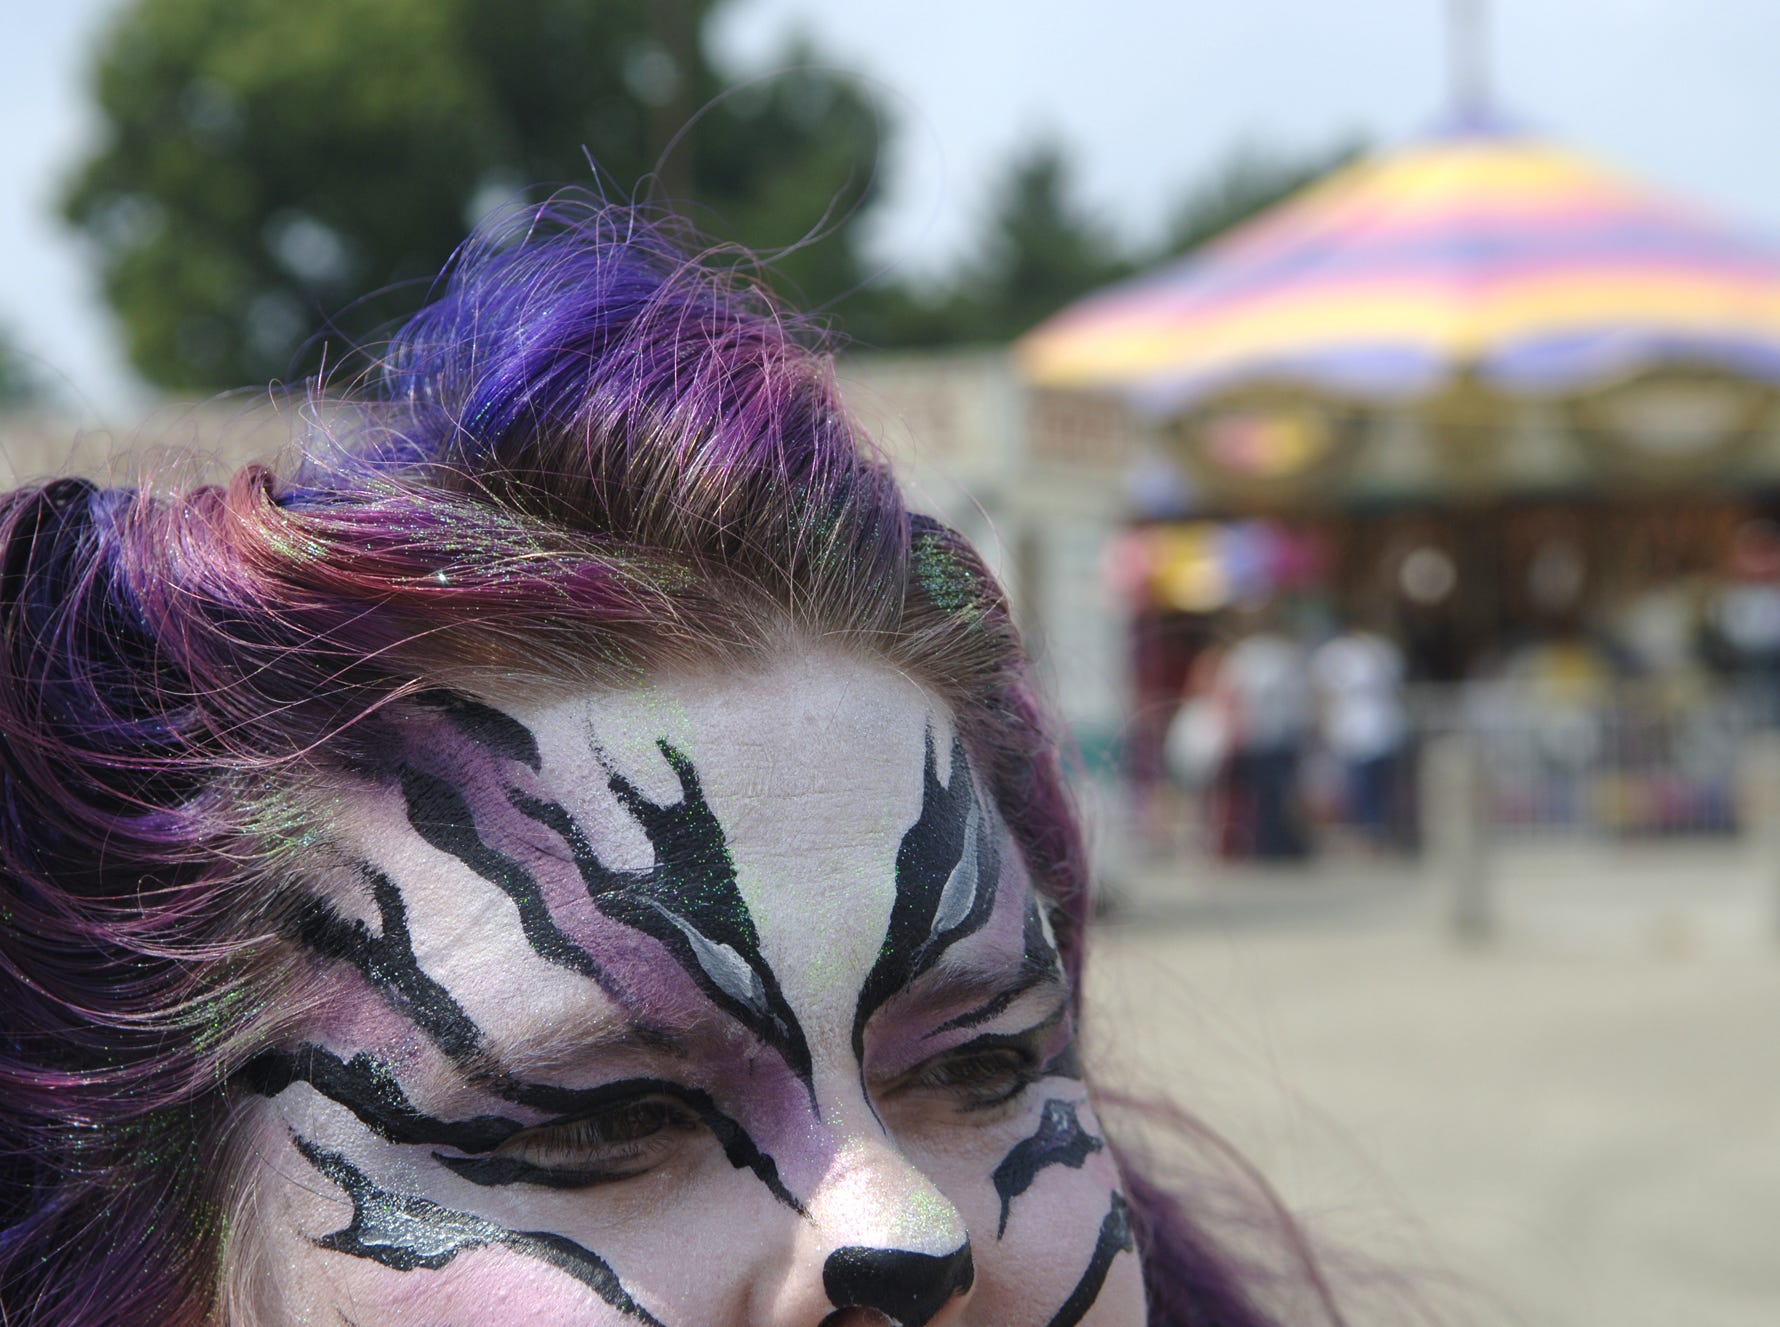 Louisville resident Melissa DePlanche had her face painted to match her hair as she sat near the midway at the Kentucky State Fair.